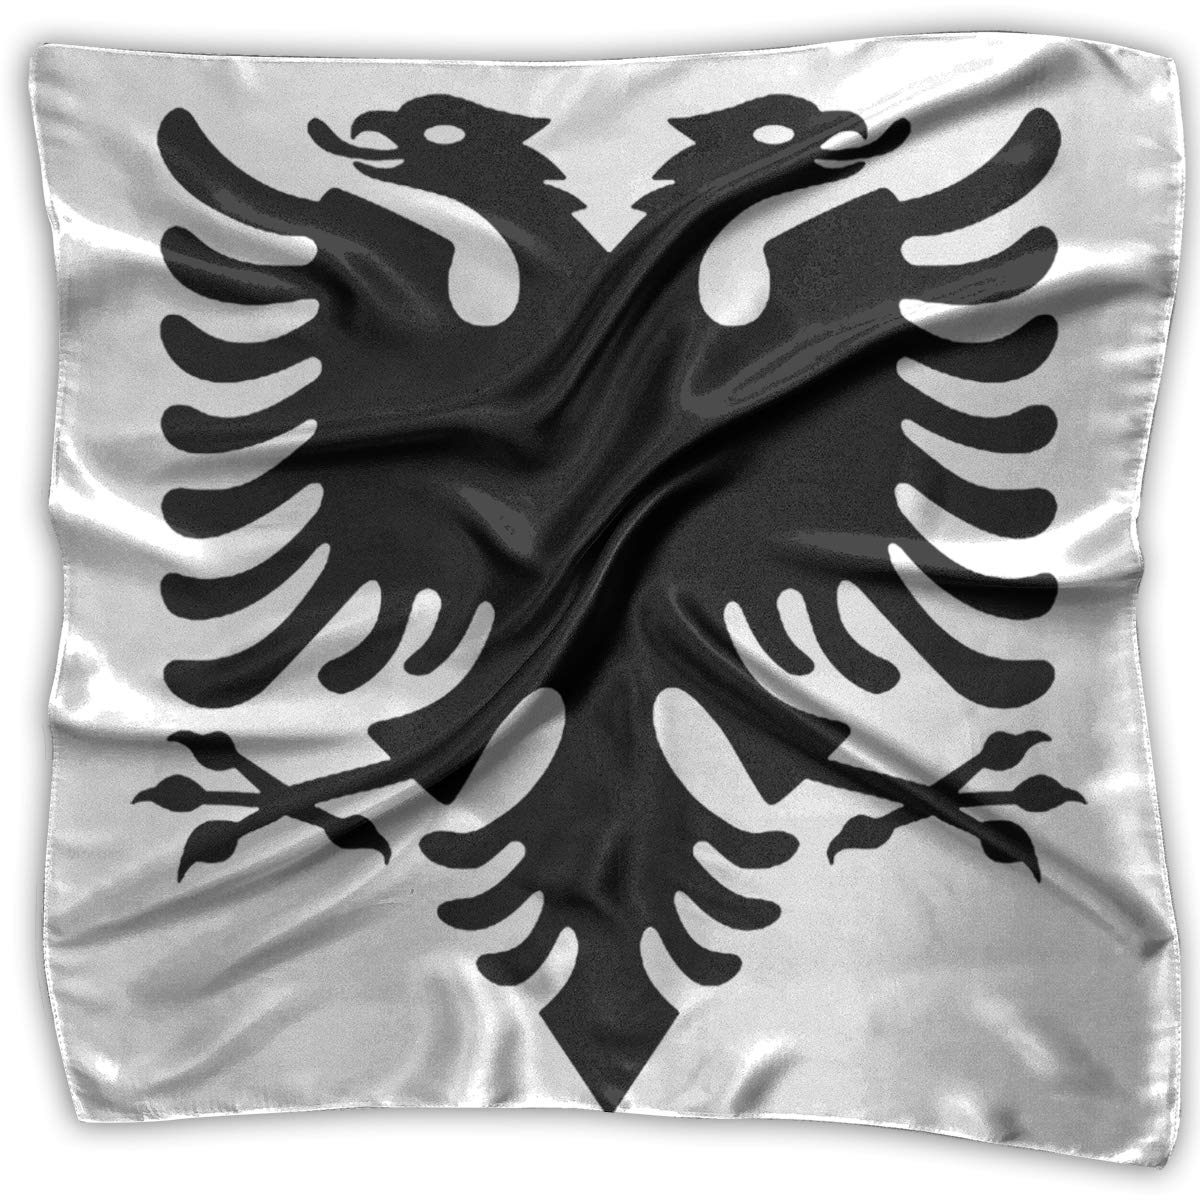 S M O4S8C239 Flag Of Albania Square Women Scarves Silk Skin Head Scarf For Spring Summer Size